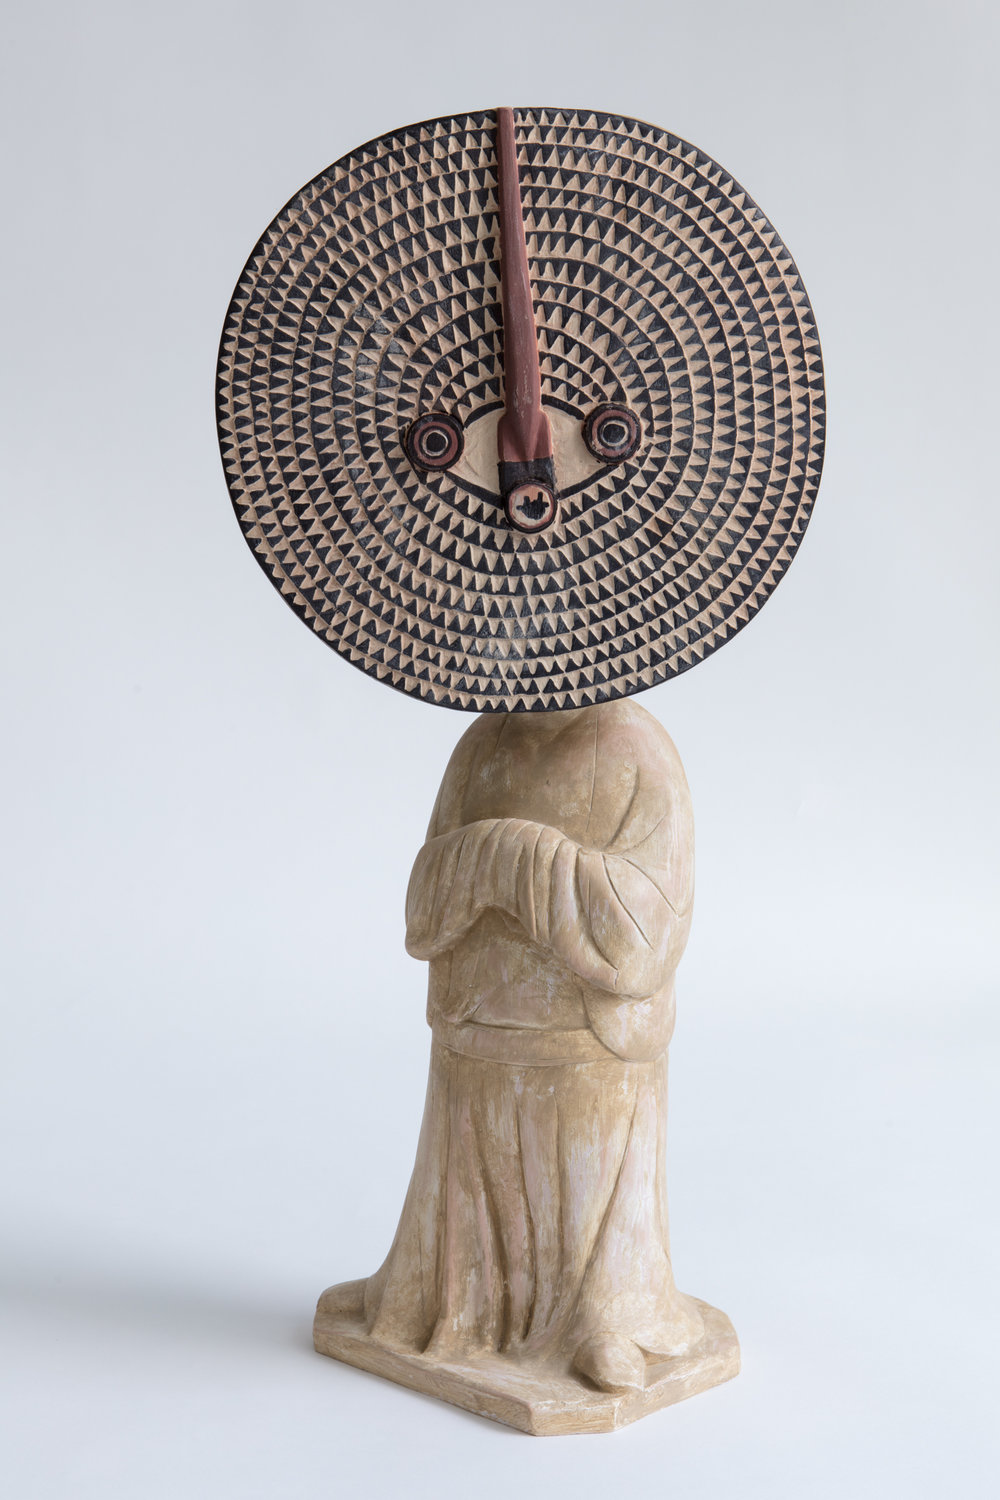 XU ZHEN®,  Evolution-Standing Female Attendant , 2017, Bwa Bobo Mask, Mineral-based composite, mineral pigments, stainless 60 x 27 x 19 cm. Edition of 99. Courtesy of the artist & MadeIn Gallery.